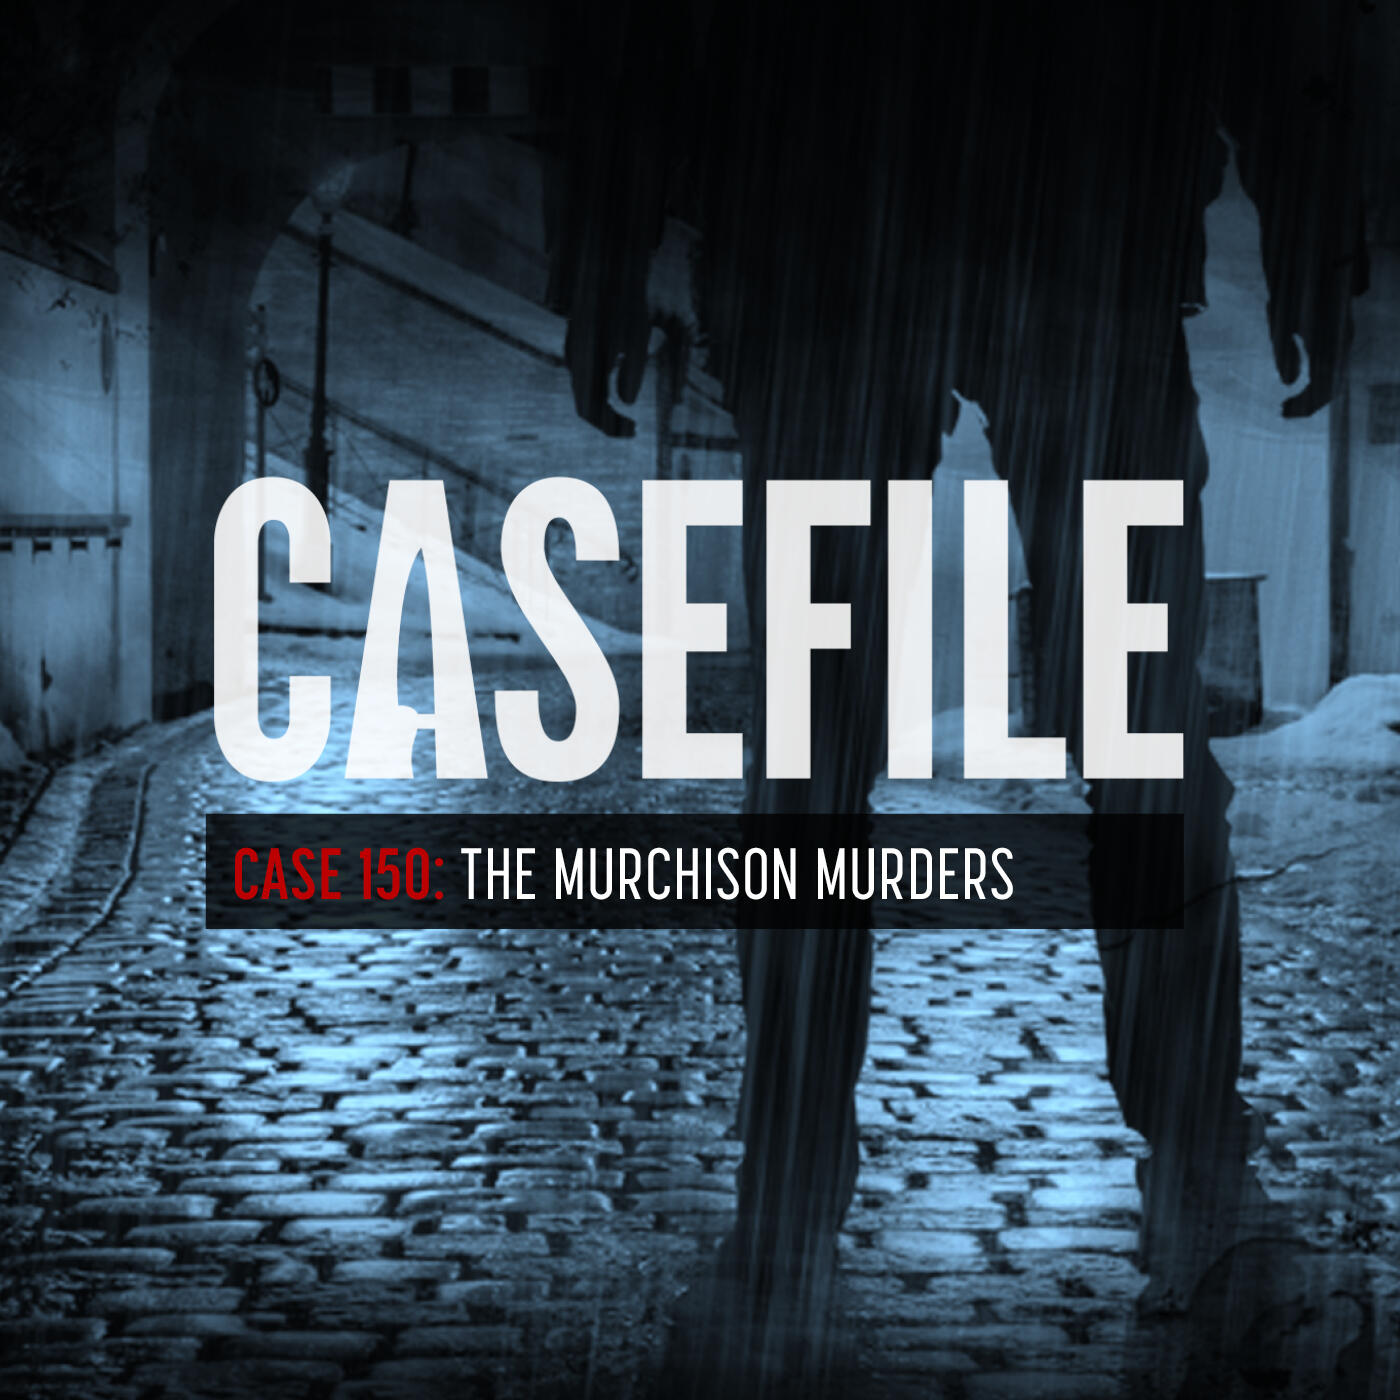 Case 150: The Murchison Murders